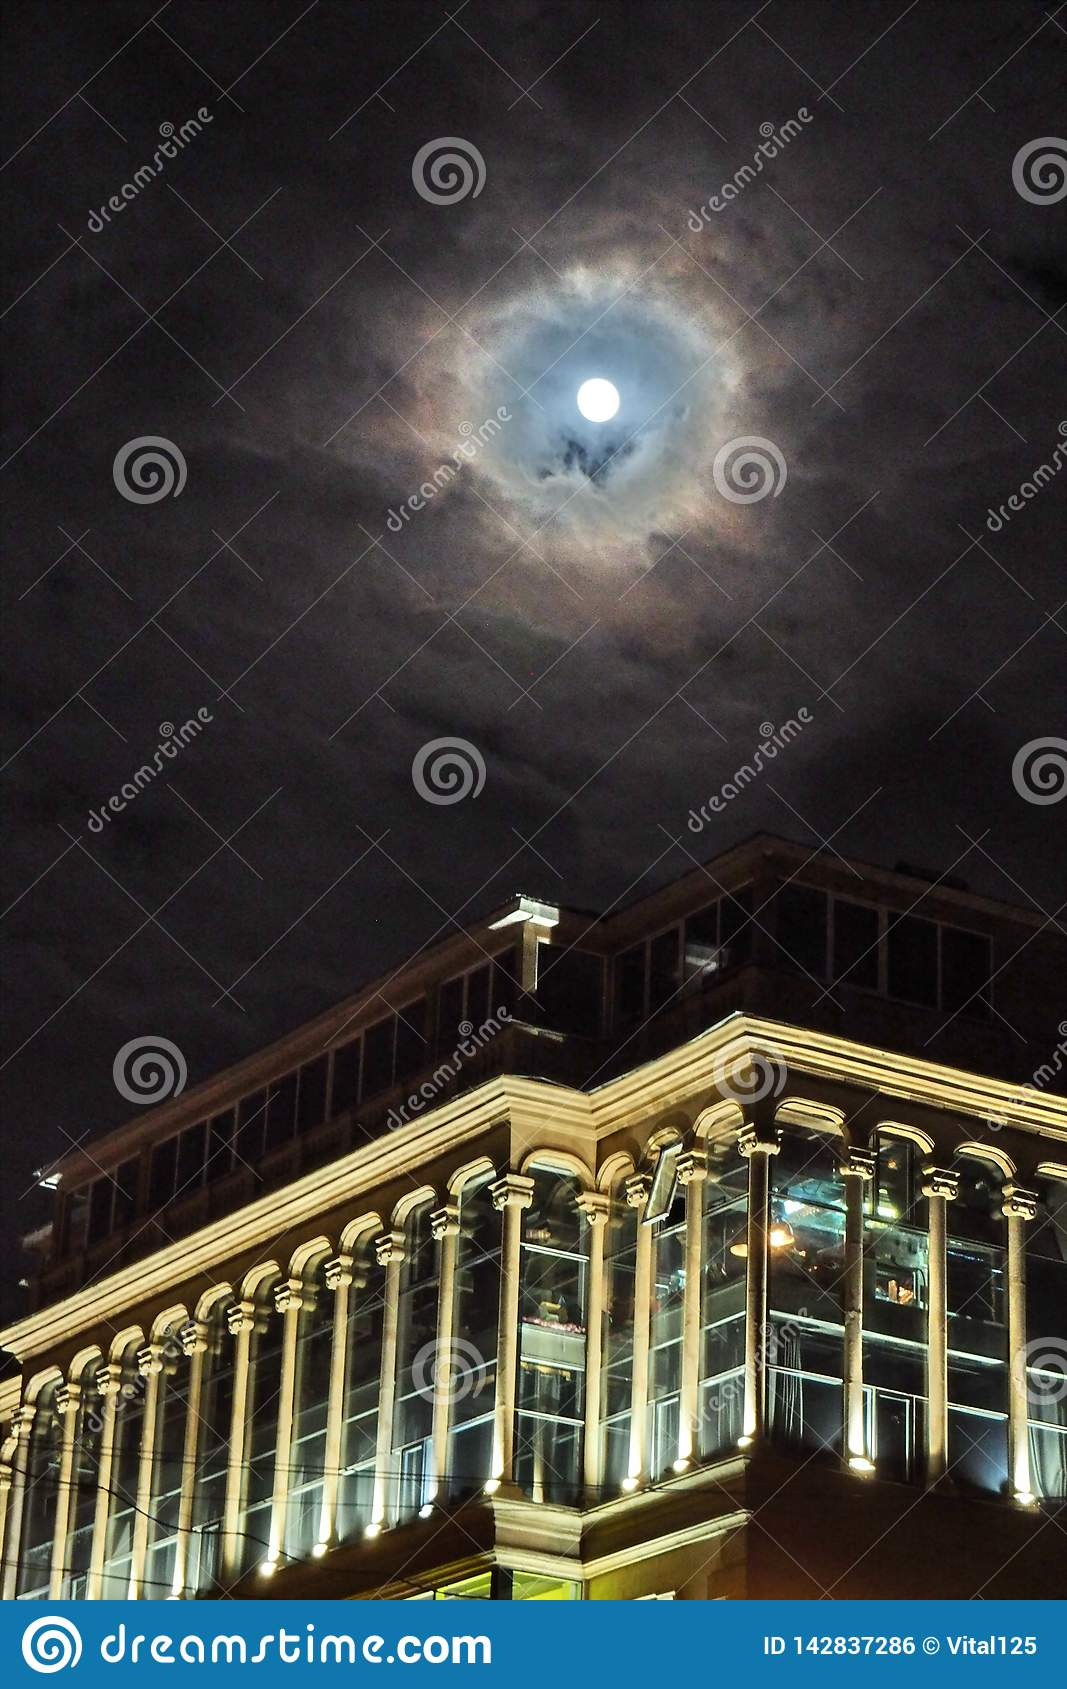 Moon and clouds observing over city